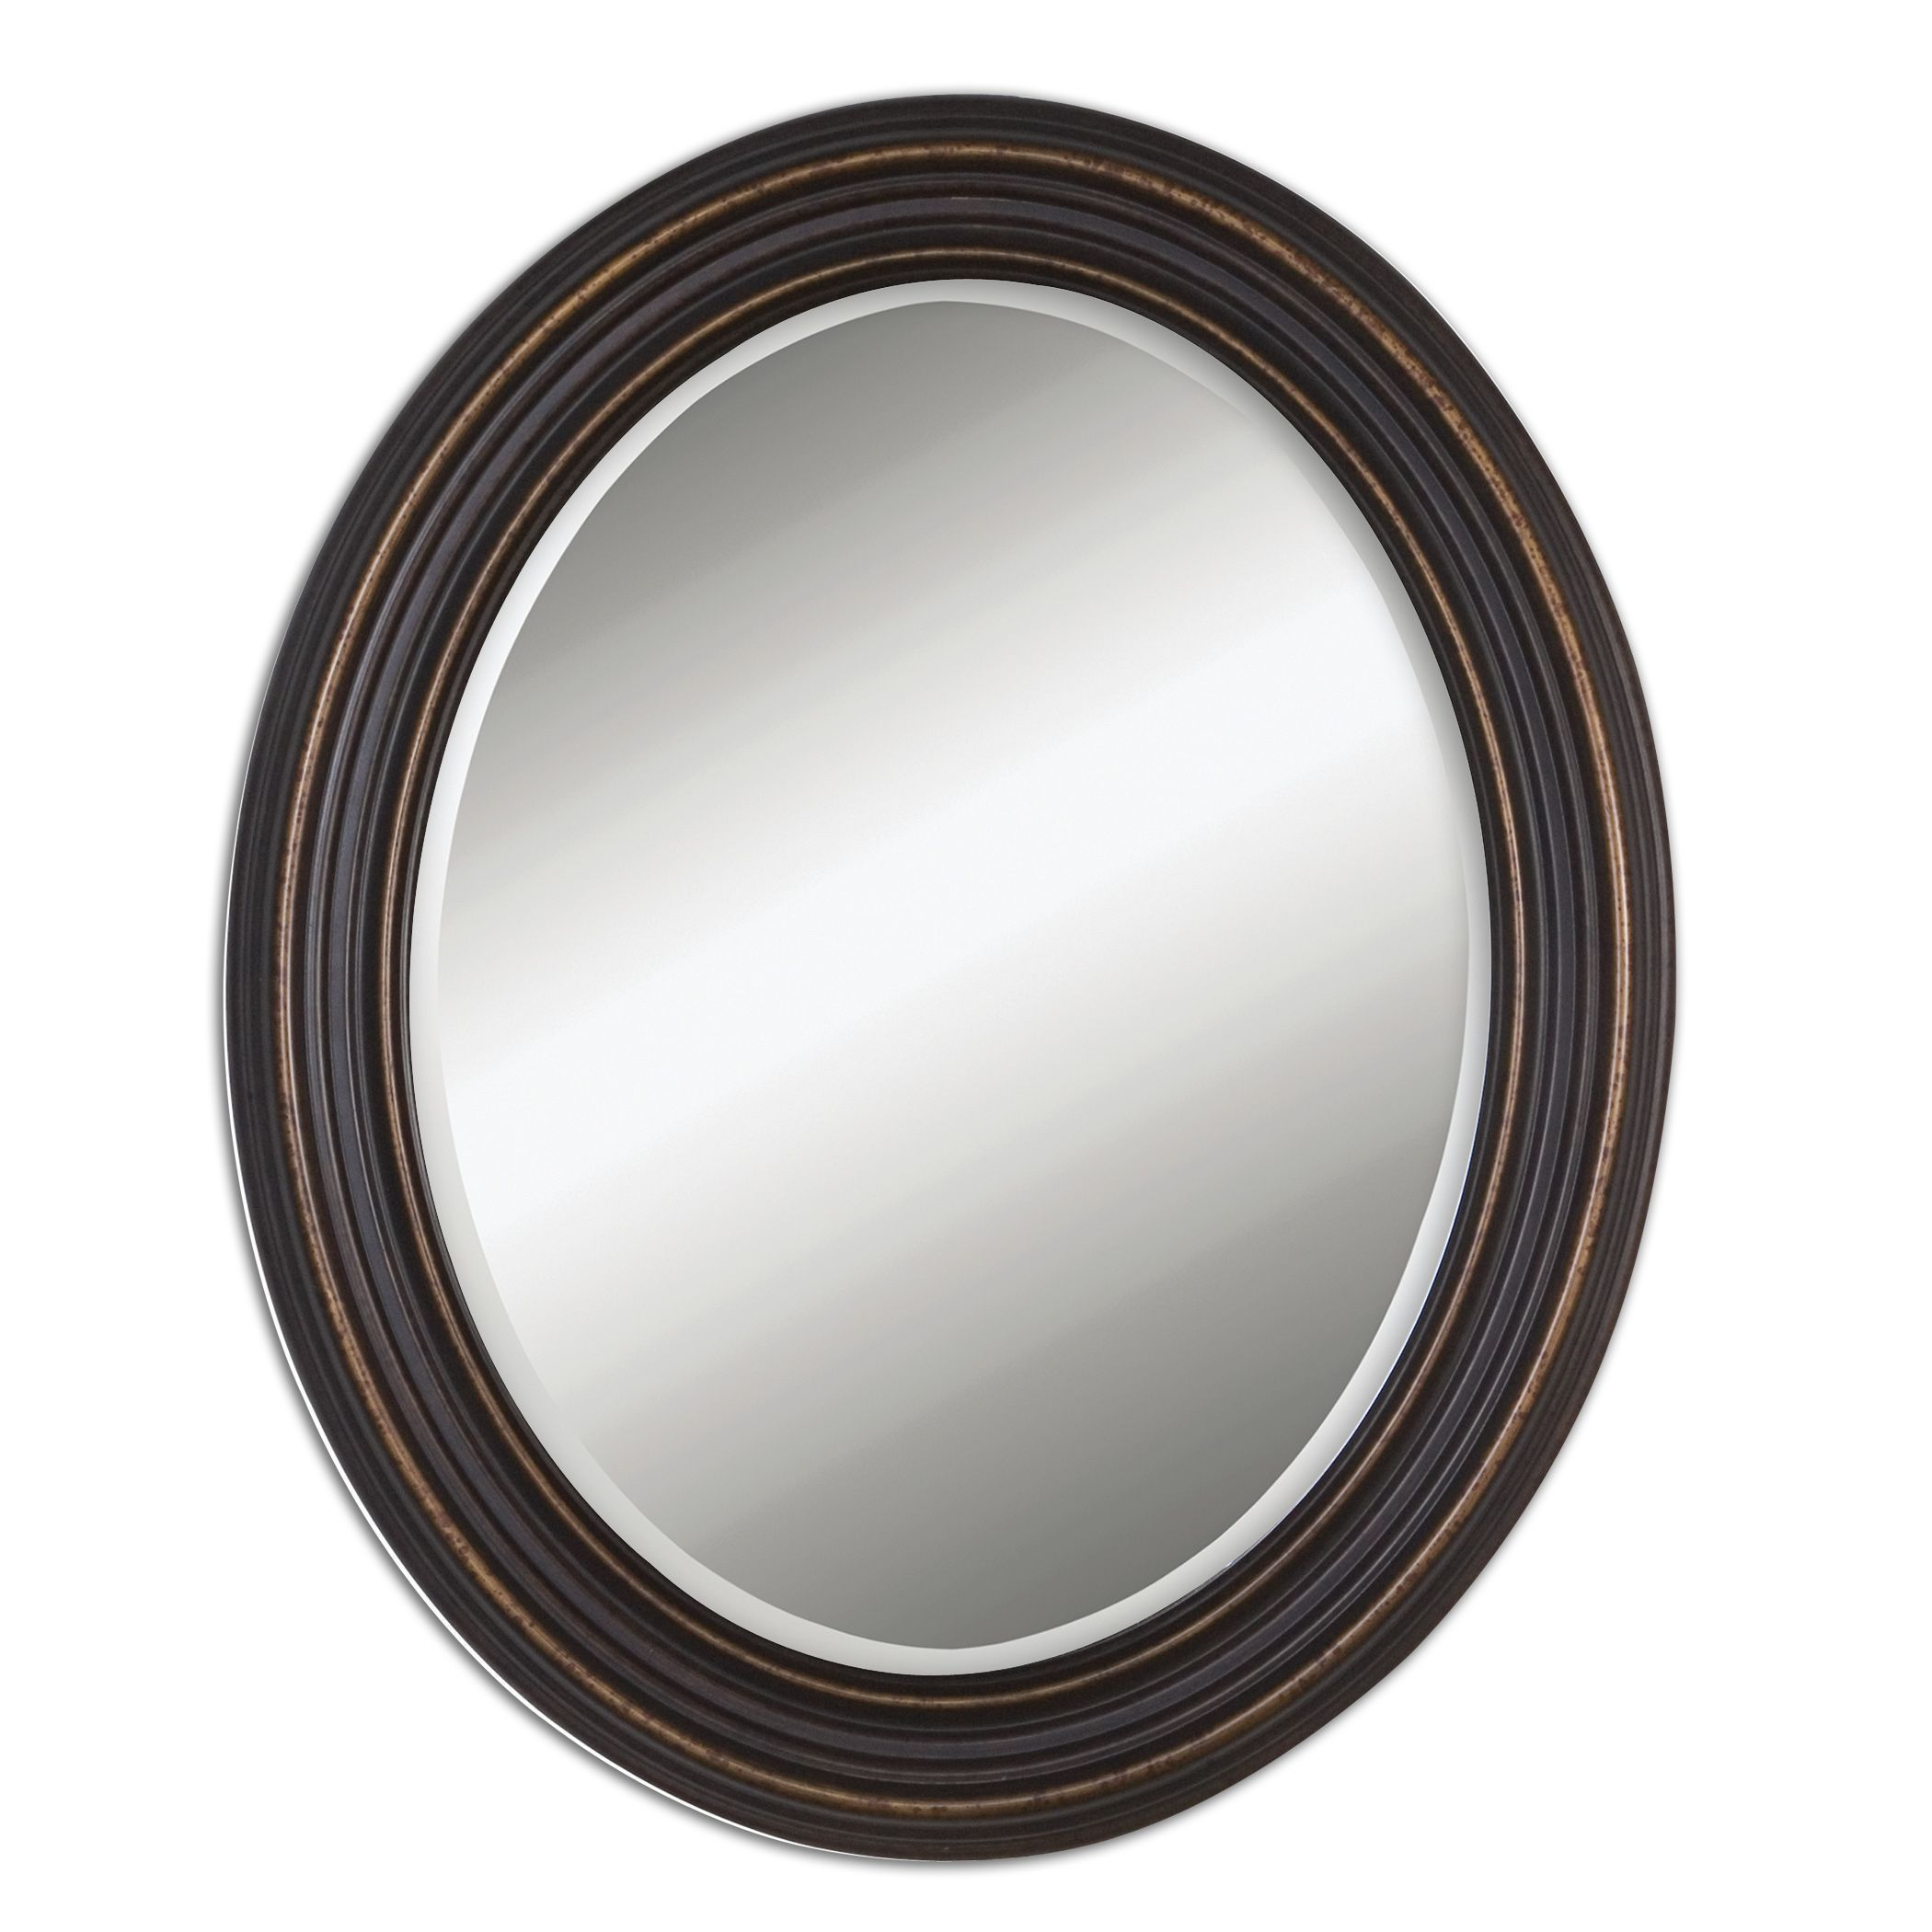 Ovesca Oval Mirror Oval Mirror Traditional Wall Mirrors Bronze